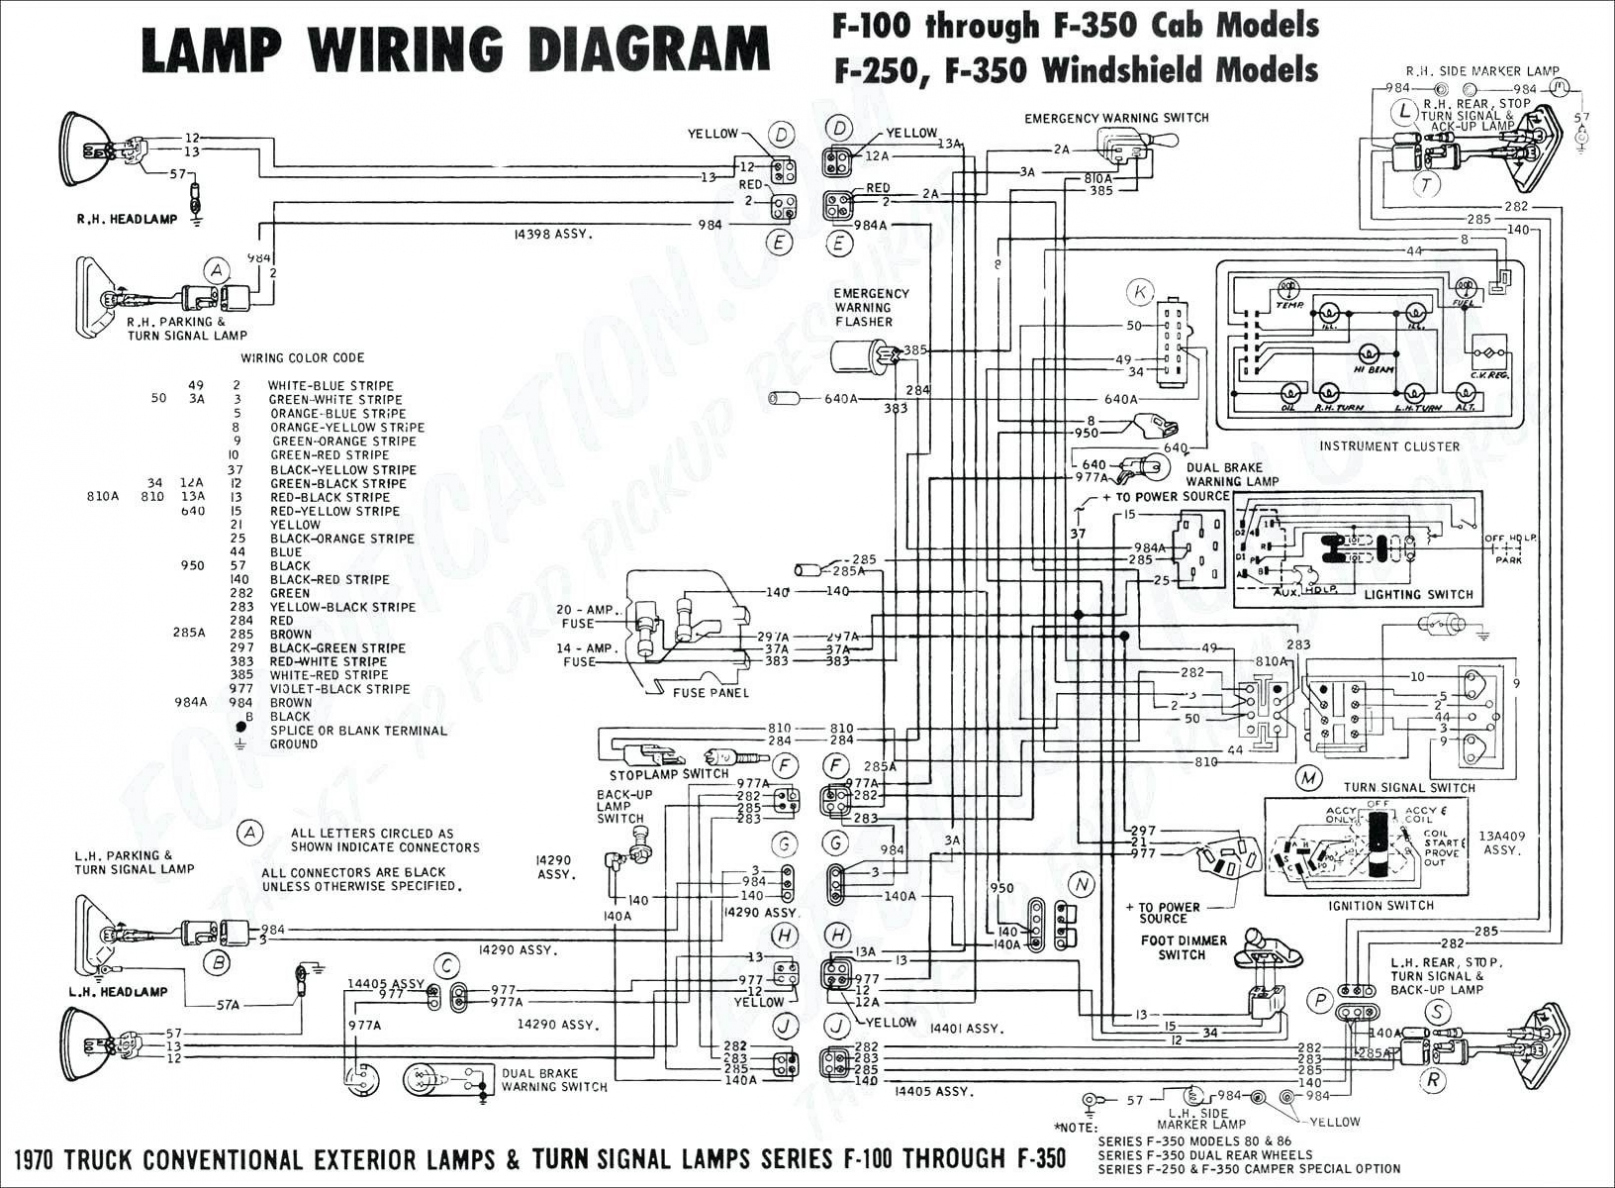 Unique Western Plow Wiring Diagram Wiring – Wiring Diagram - Western Plow Wiring Diagram